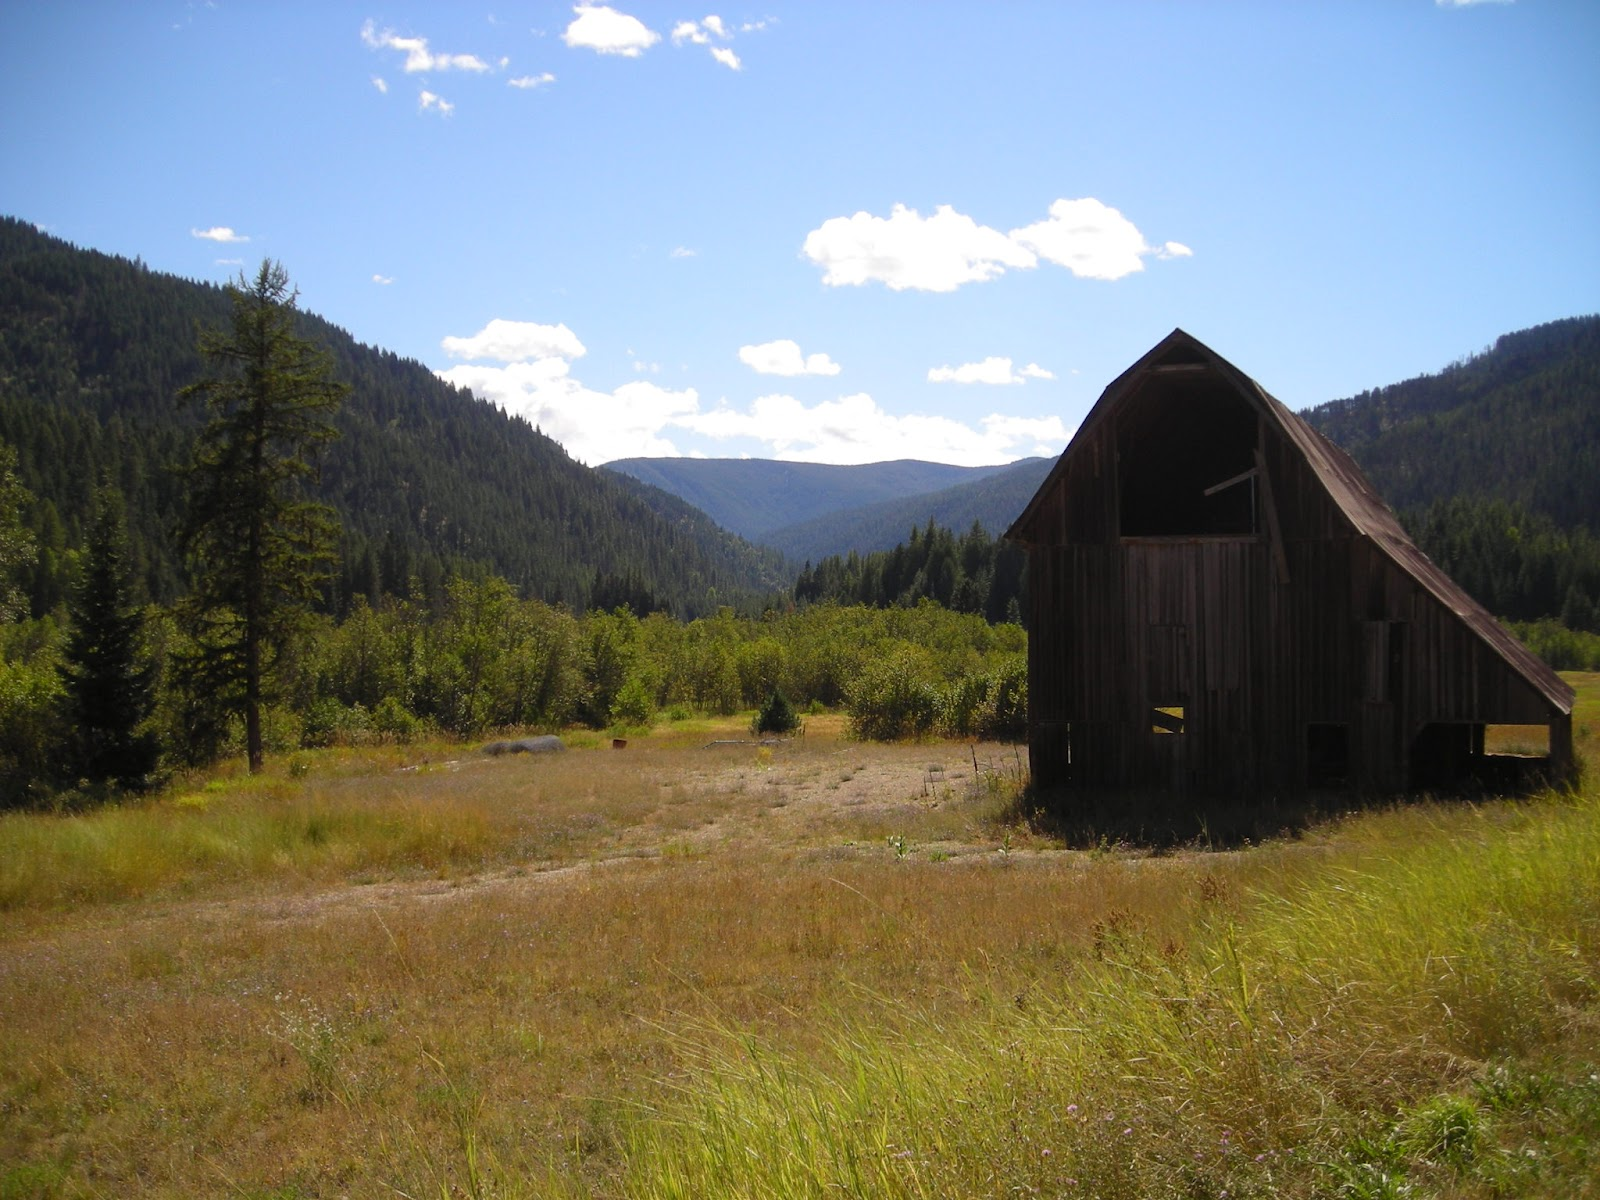 Montana sanders county dixon -  Road Out Side Heron Montana Just To See What We D Find Why Not Follow The Lovely Elk Creek These Are The Two Amazing Barns We Spotted Along The Way